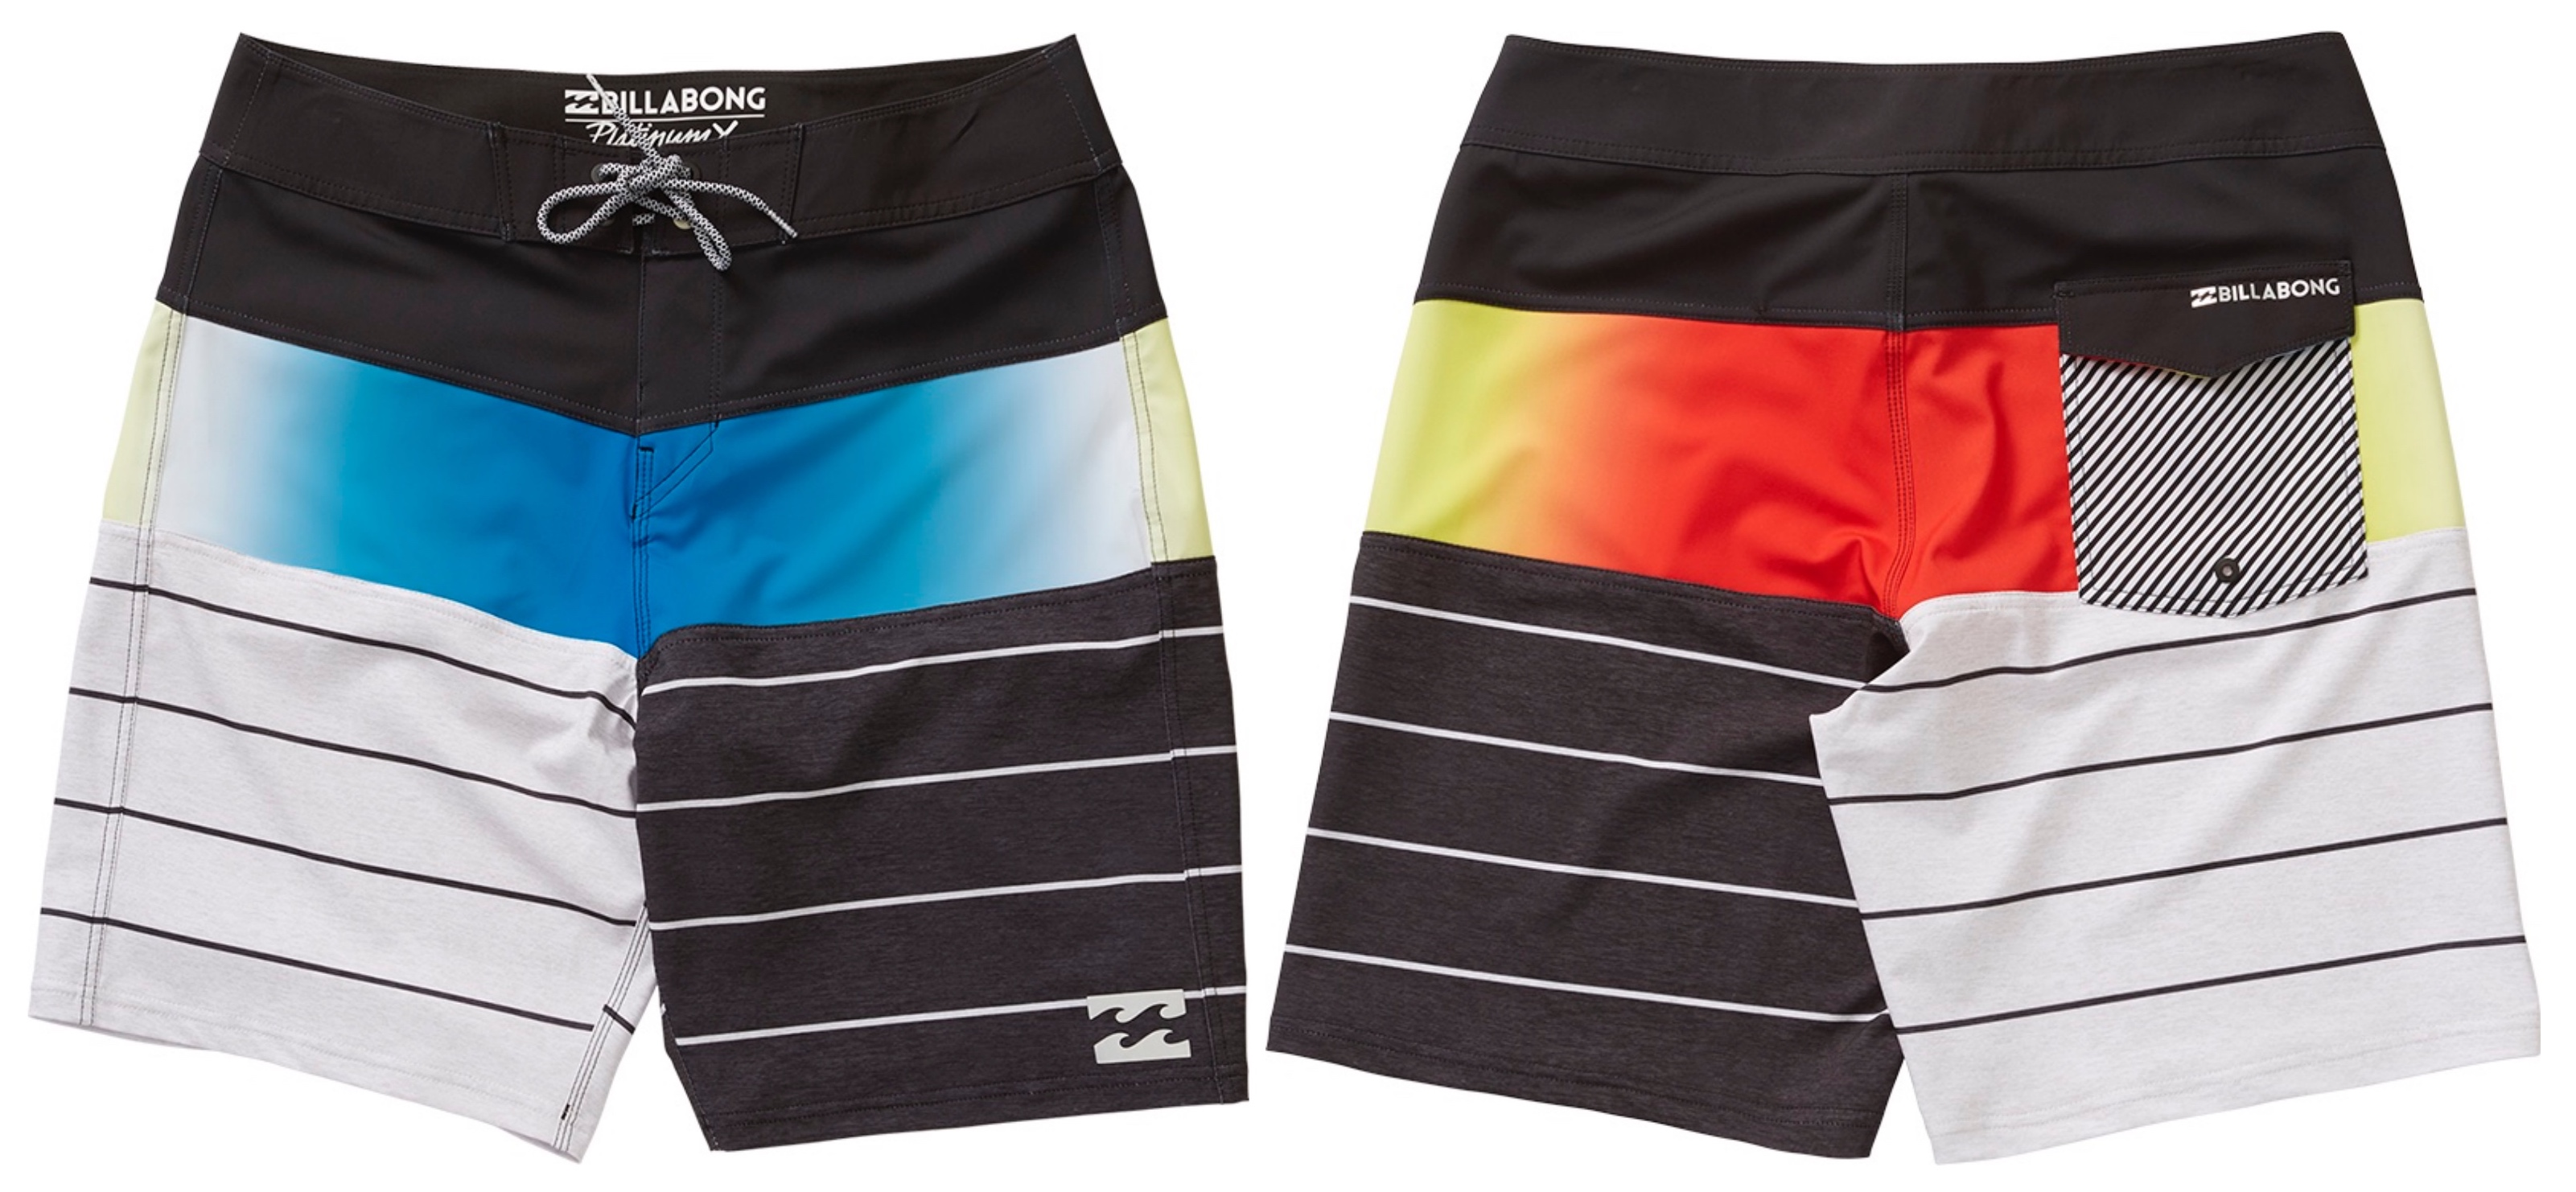 Billabong Tribong X 19 Boardshorts